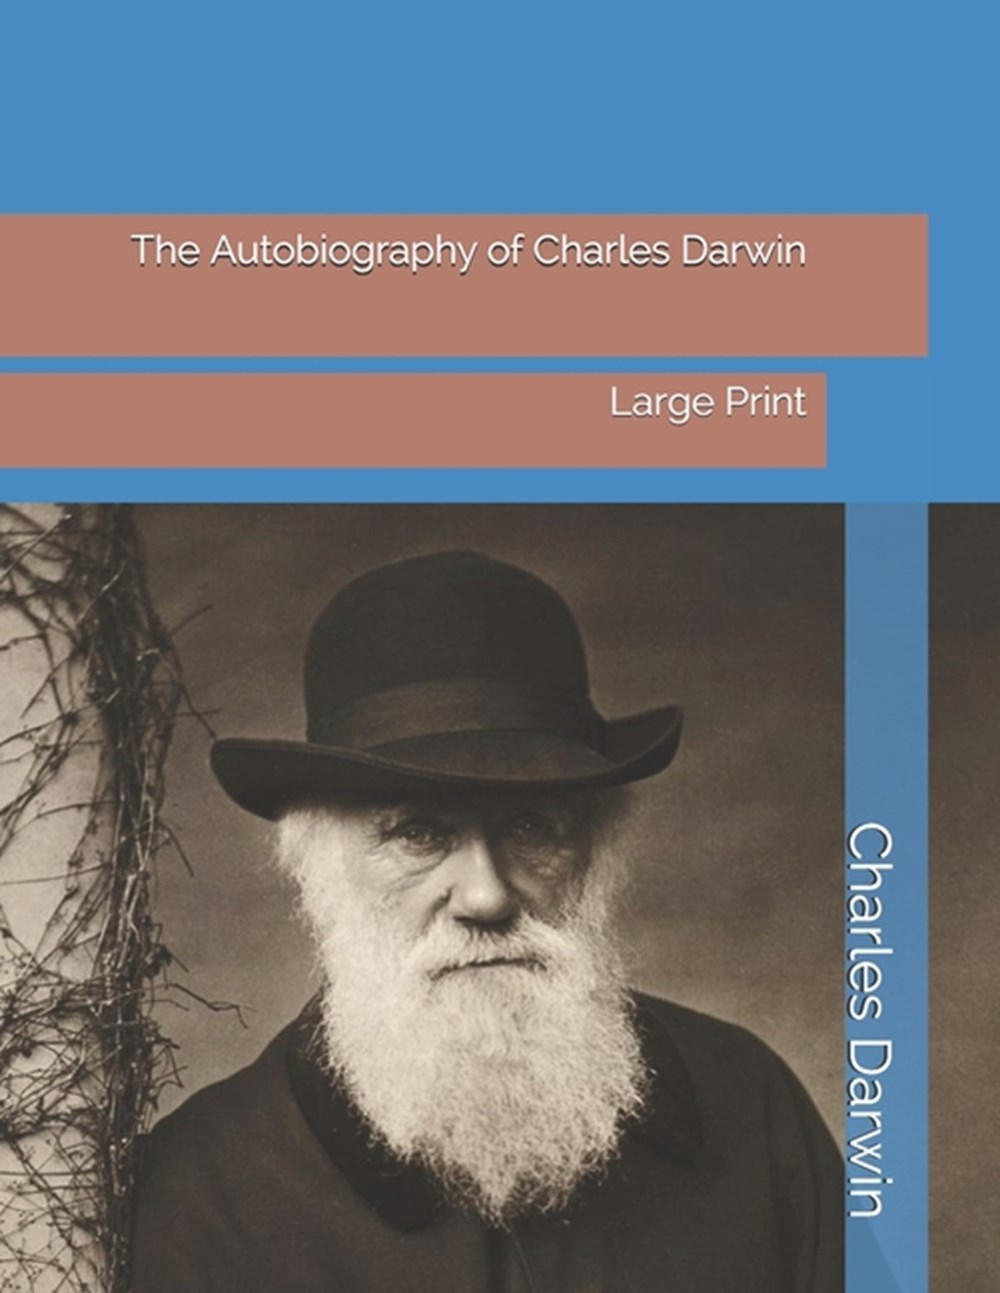 Autobiography of Charles Darwin Large Print